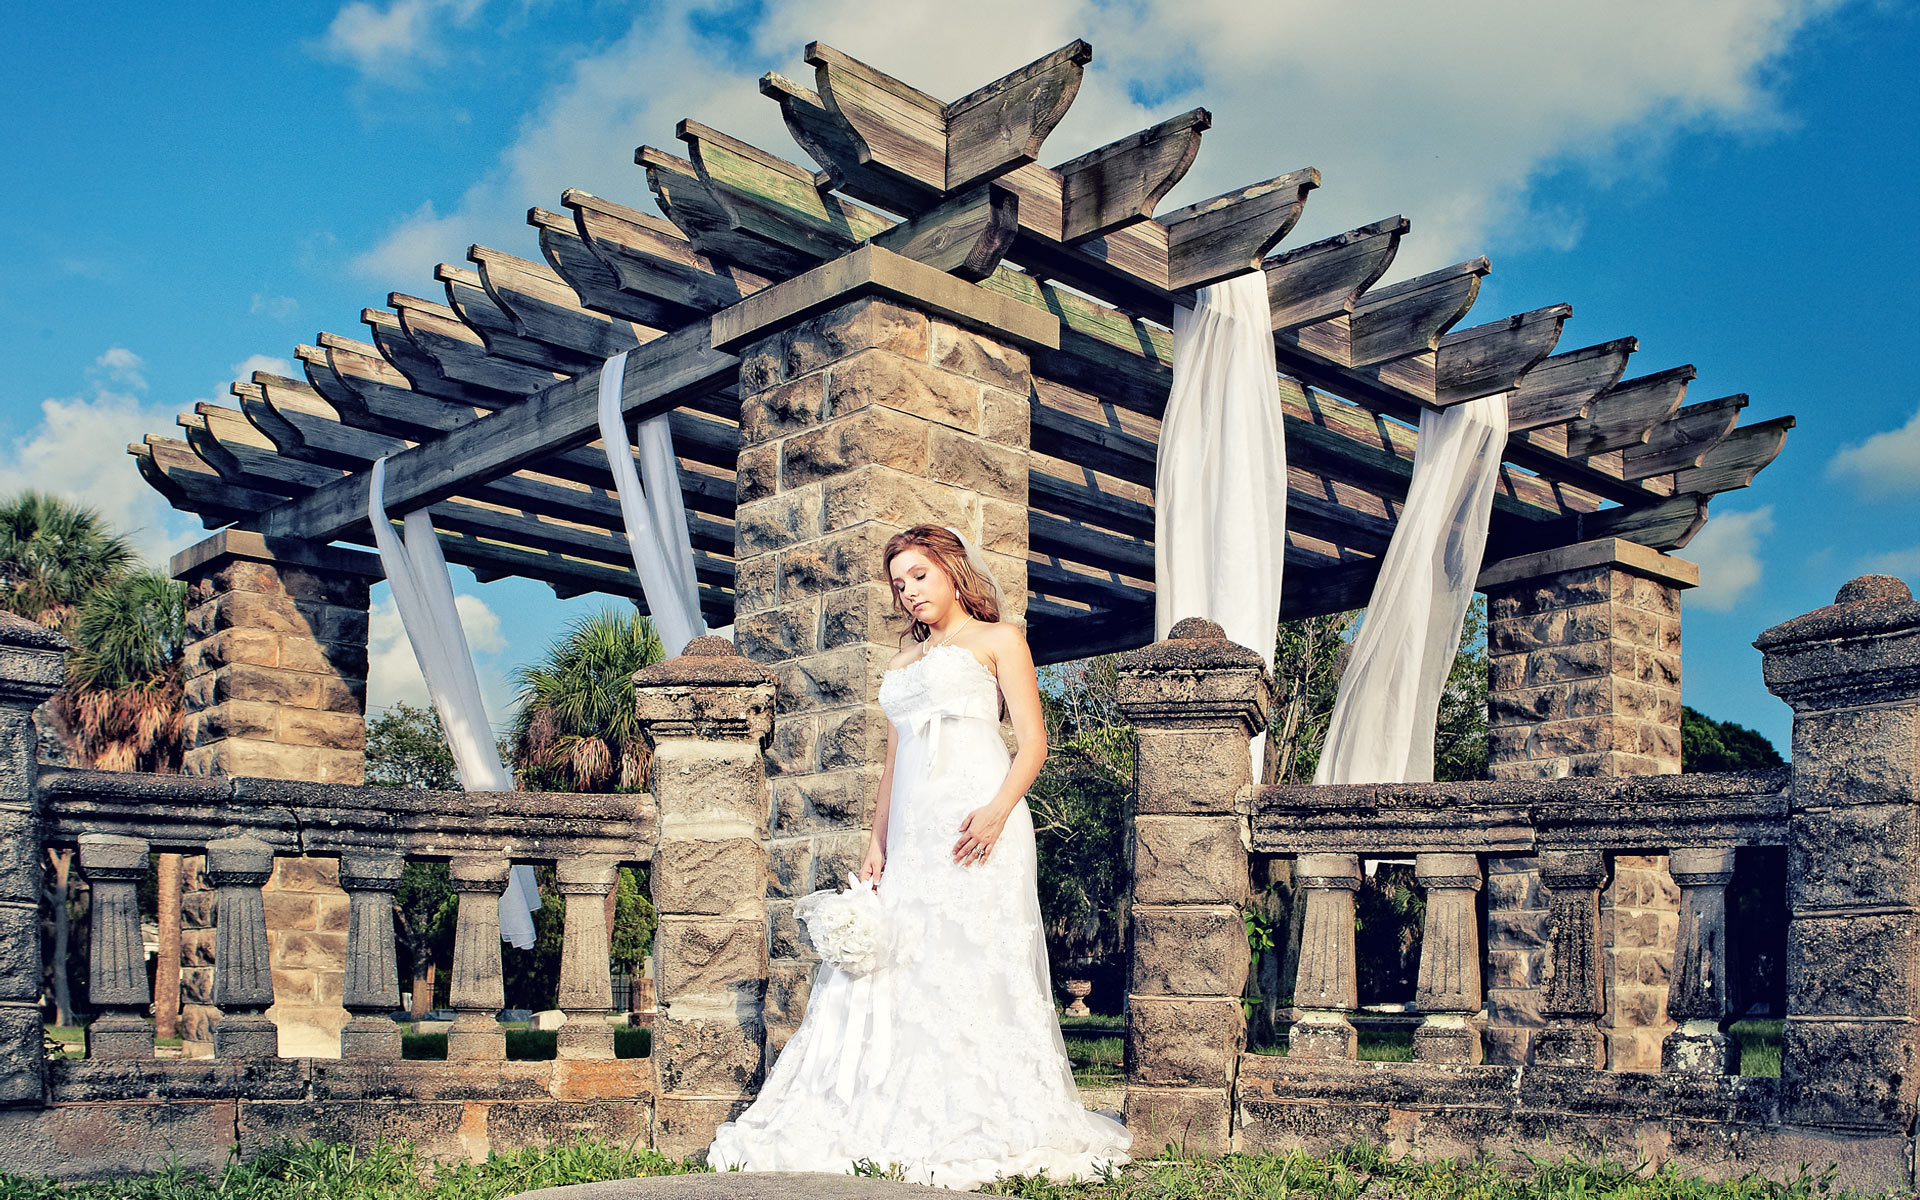 A Fine Art Bridal Photo Shoot in an Artistic Location